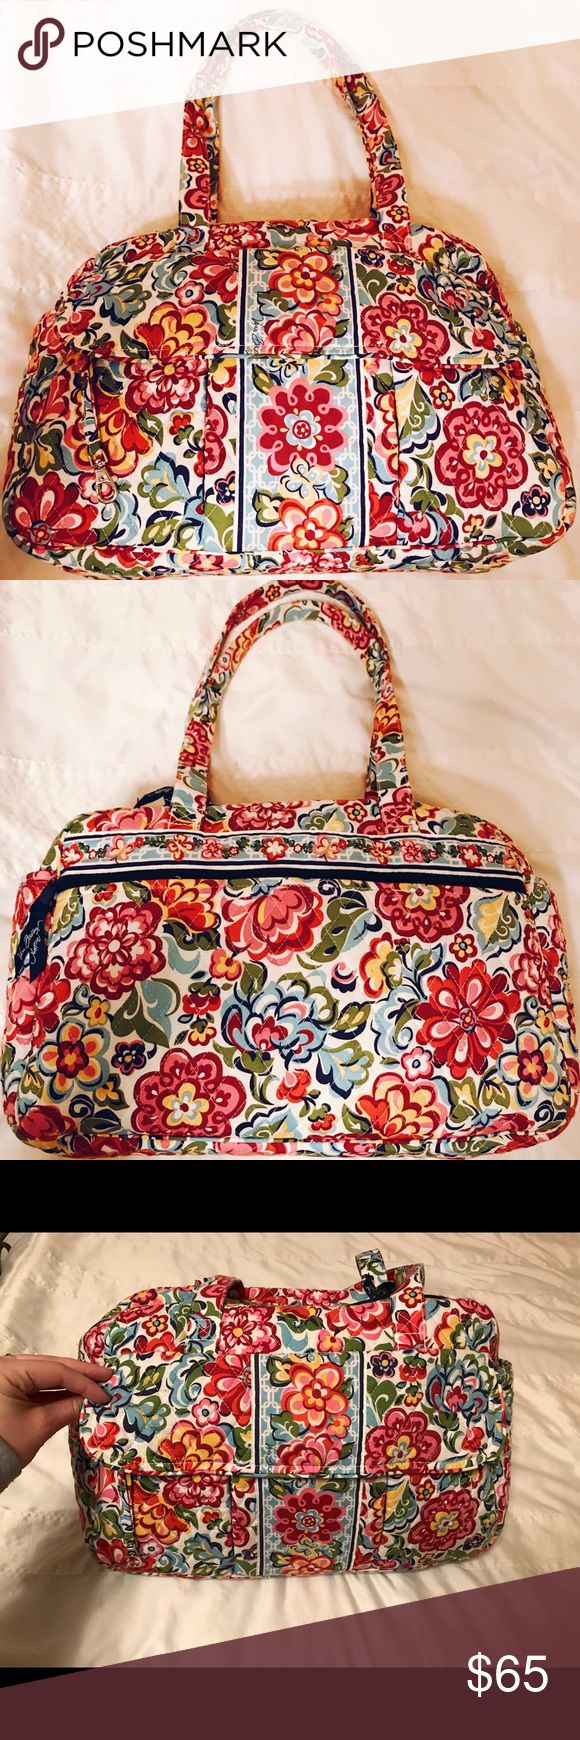 Vera Bradley Duffel Bag Floral Vera Bradley Duffel Bag. Inside of the bag contains 5 different compartments. The outside of the bag has two side pockets, a large zipper compartment and three separate compartments on the opposite side of the bag. The bag is in great condition and shows no signs of wear. Please feel free comment with questions! I will ship out same day of purchase 😀 Vera Bradley Bags Travel Bags